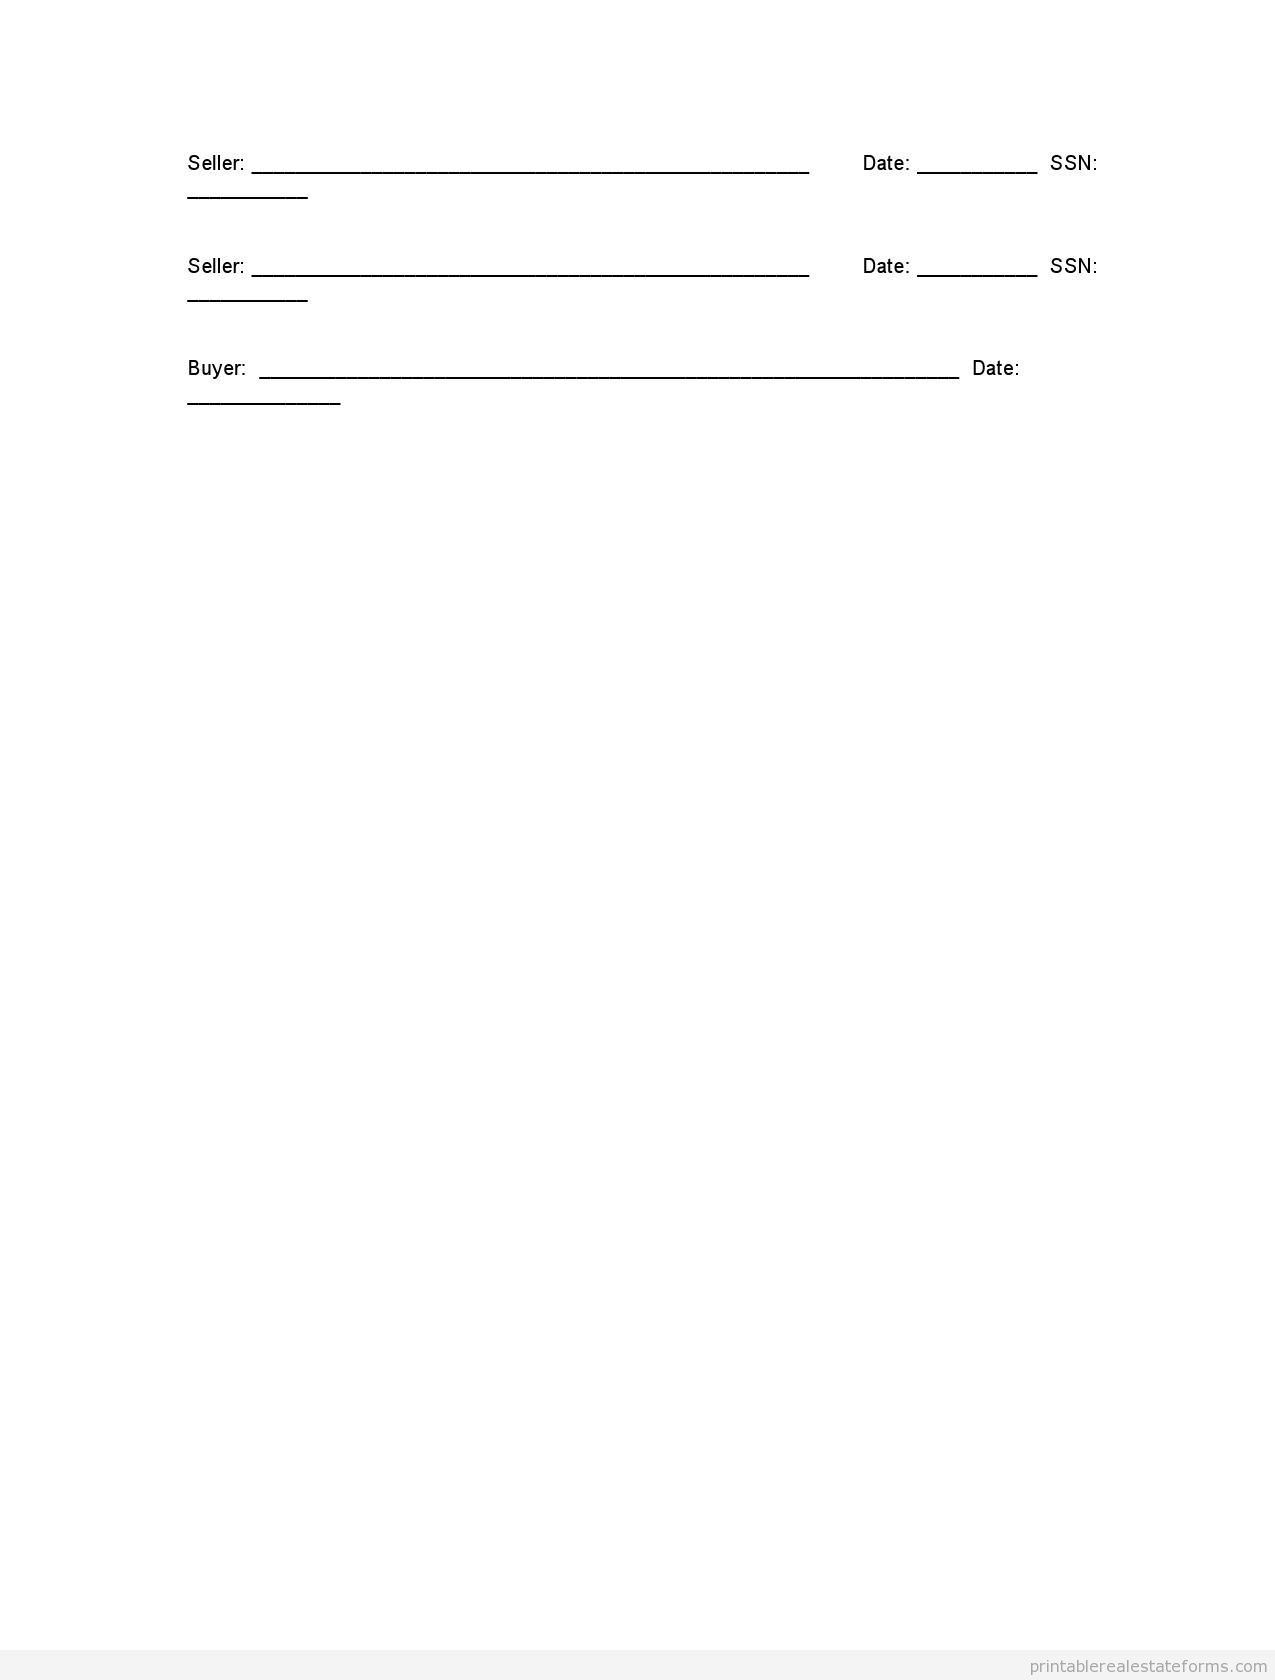 Printable BUYING Monster Purchase and Sale Agreement